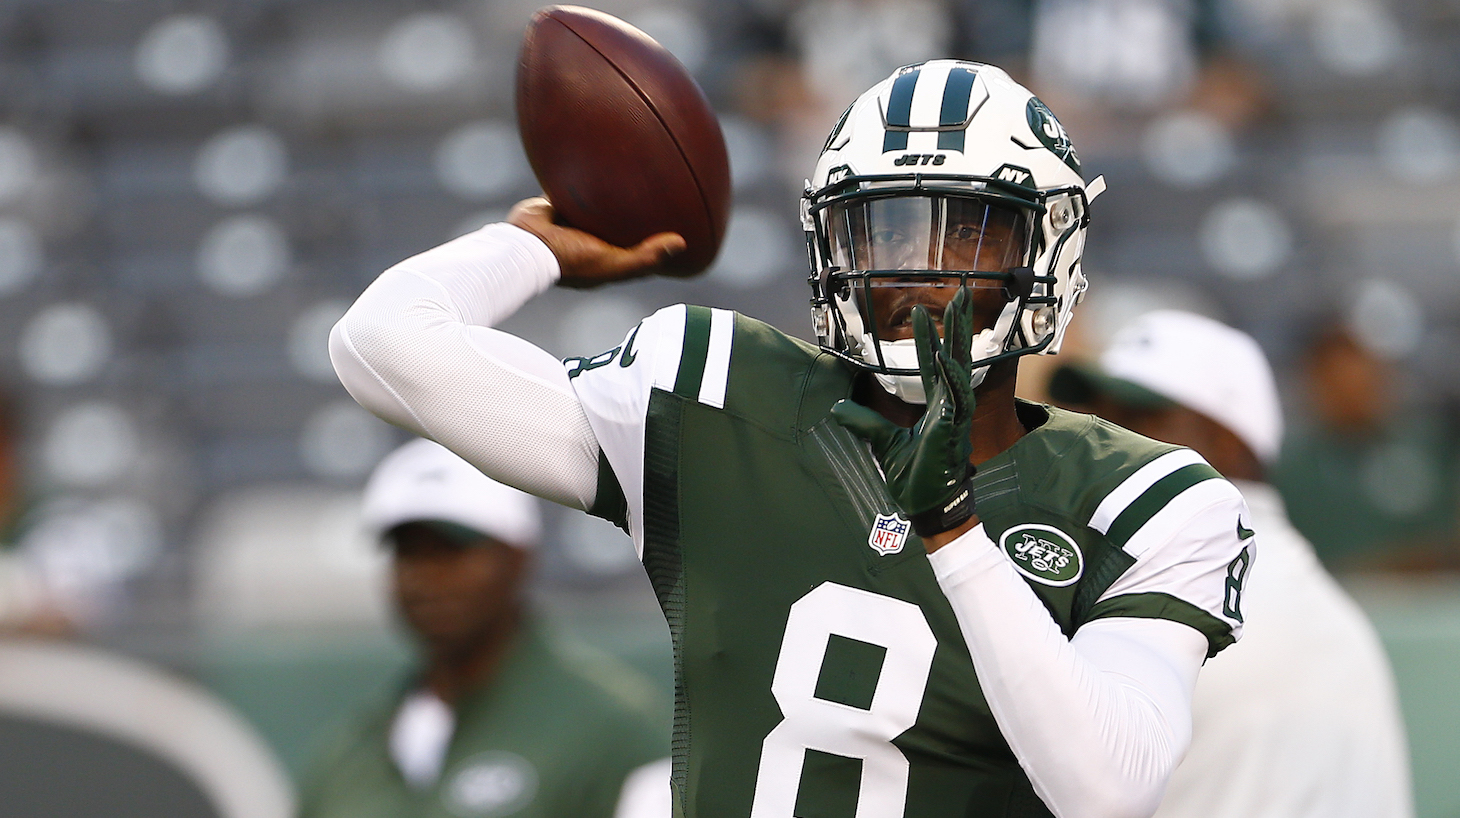 EAST RUTHERFORD, NJ - SEPTEMBER 03: Quarterback Josh Johnson #8 of the New York Jets warms up before a pre-season game against the Philadelphia Eagles at MetLife Stadium on September 3, 2015 in East Rutherford, New Jersey. (Photo by Rich Schultz /Getty Images)